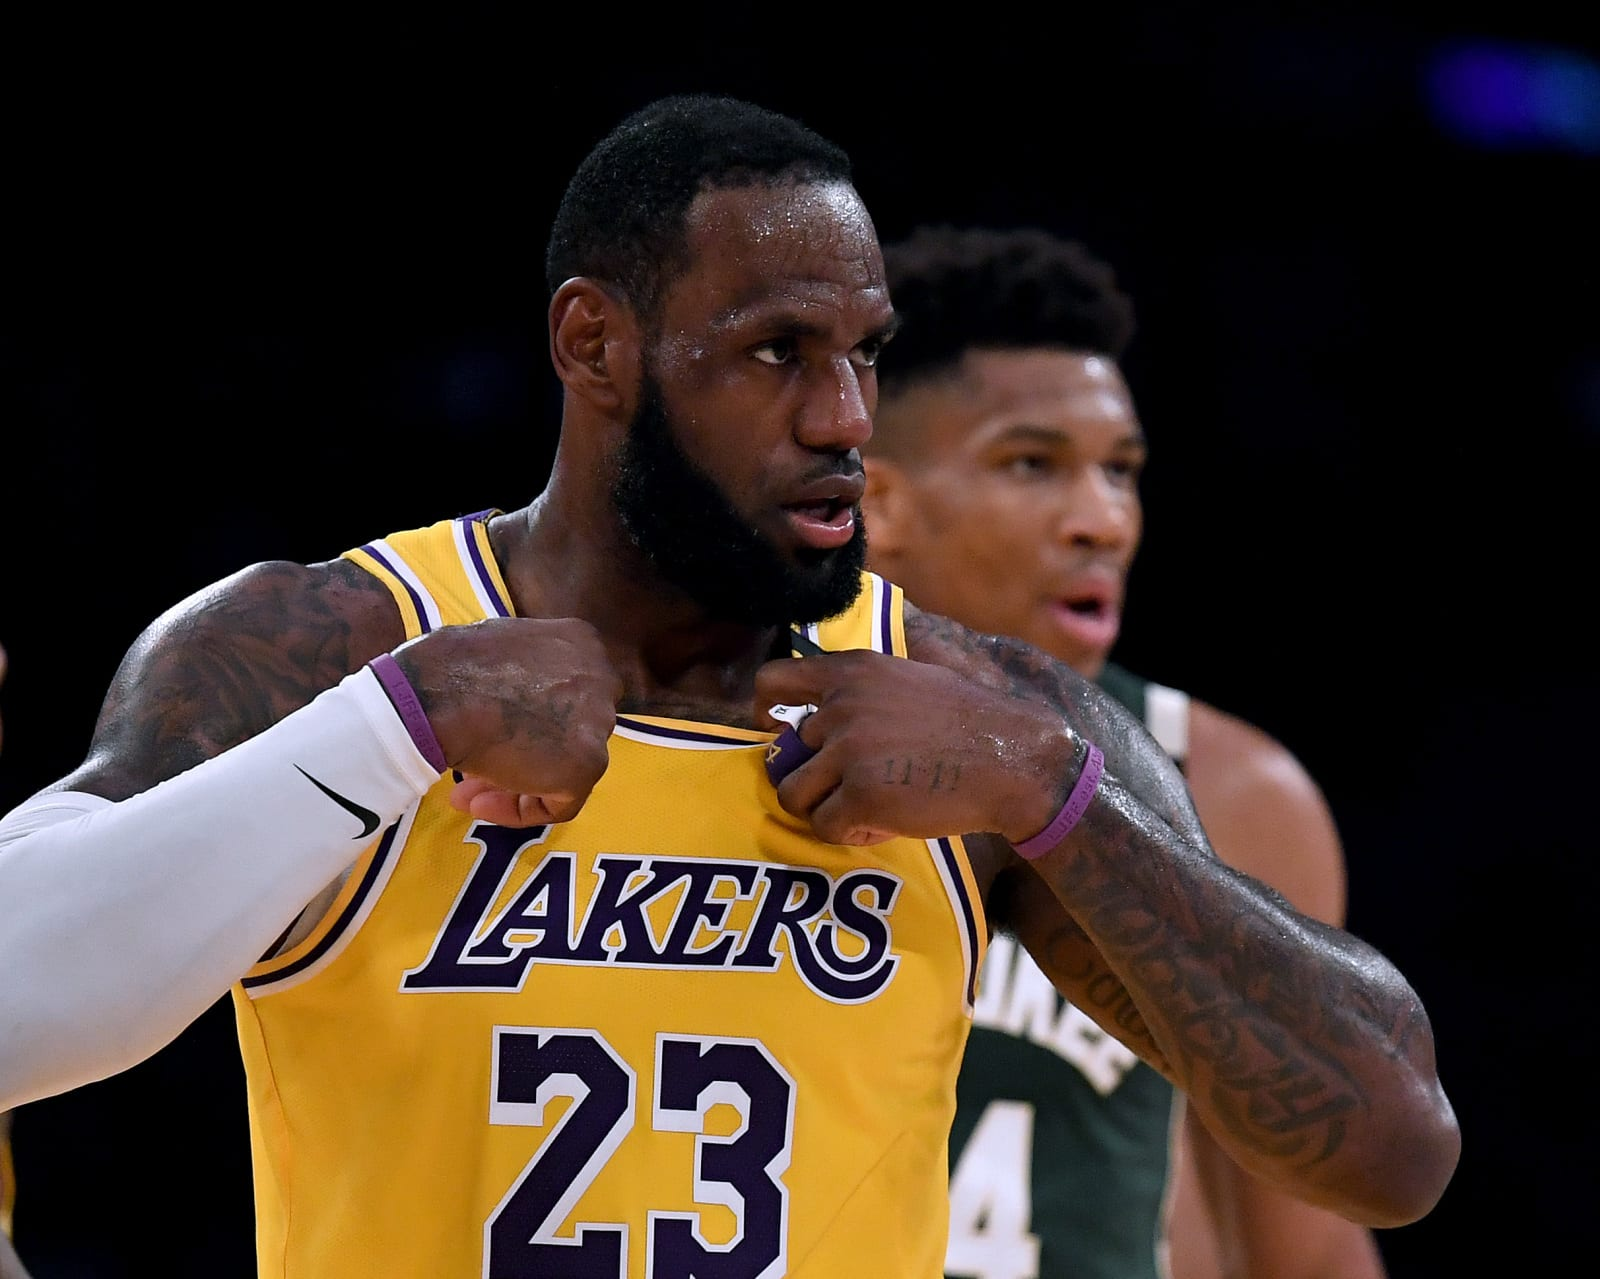 NBA LeBron James Giannis Antetokoumpo